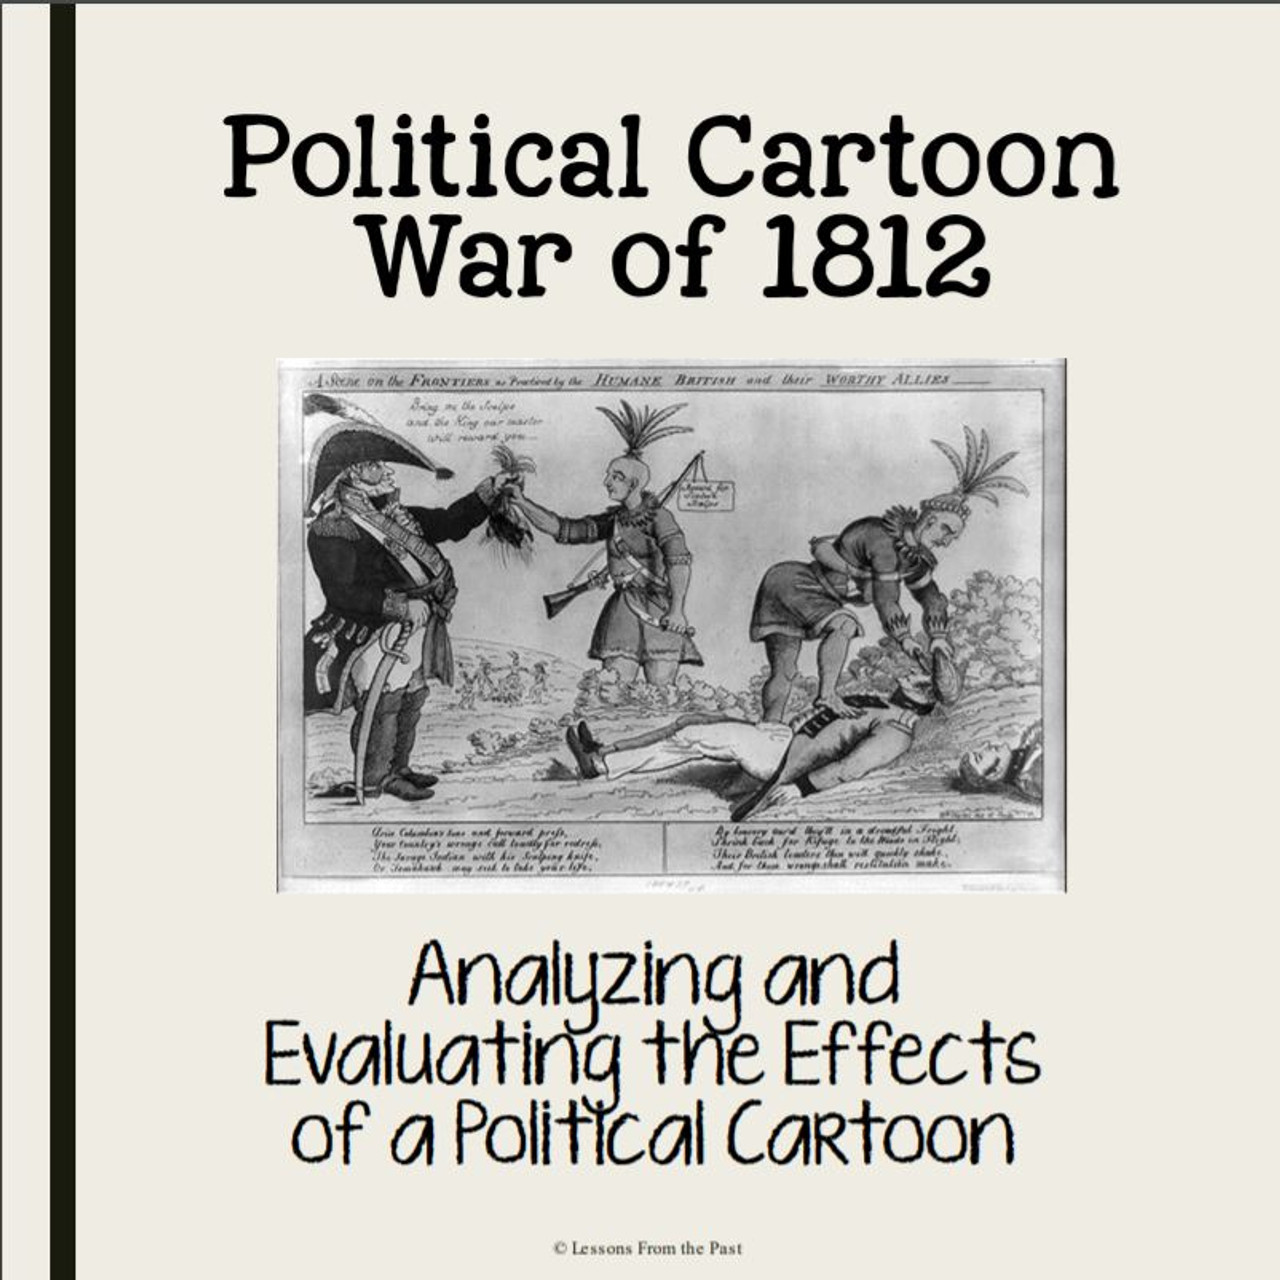 small resolution of Political Cartoon War of 1812-Were British Actions Humane? - Amped Up  Learning